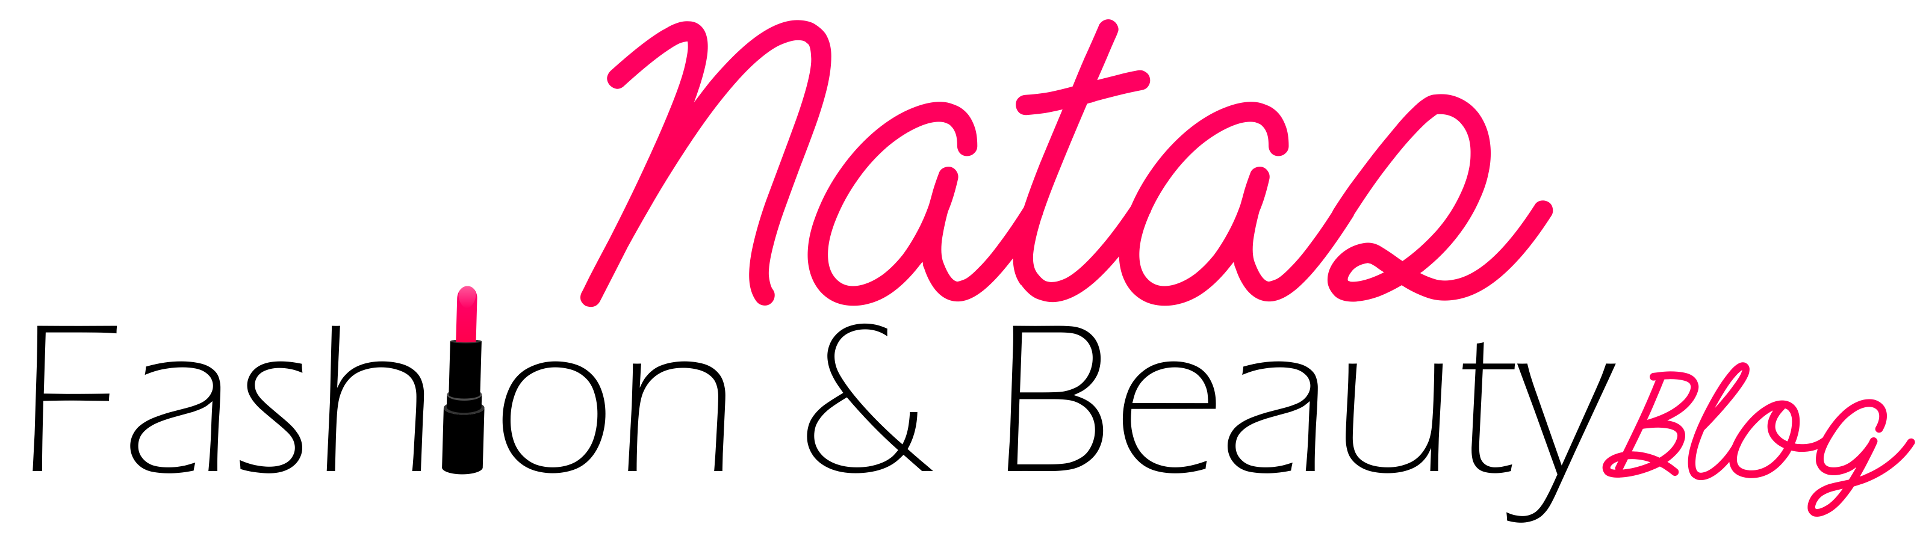 Natas Fashion & Beauty Blog